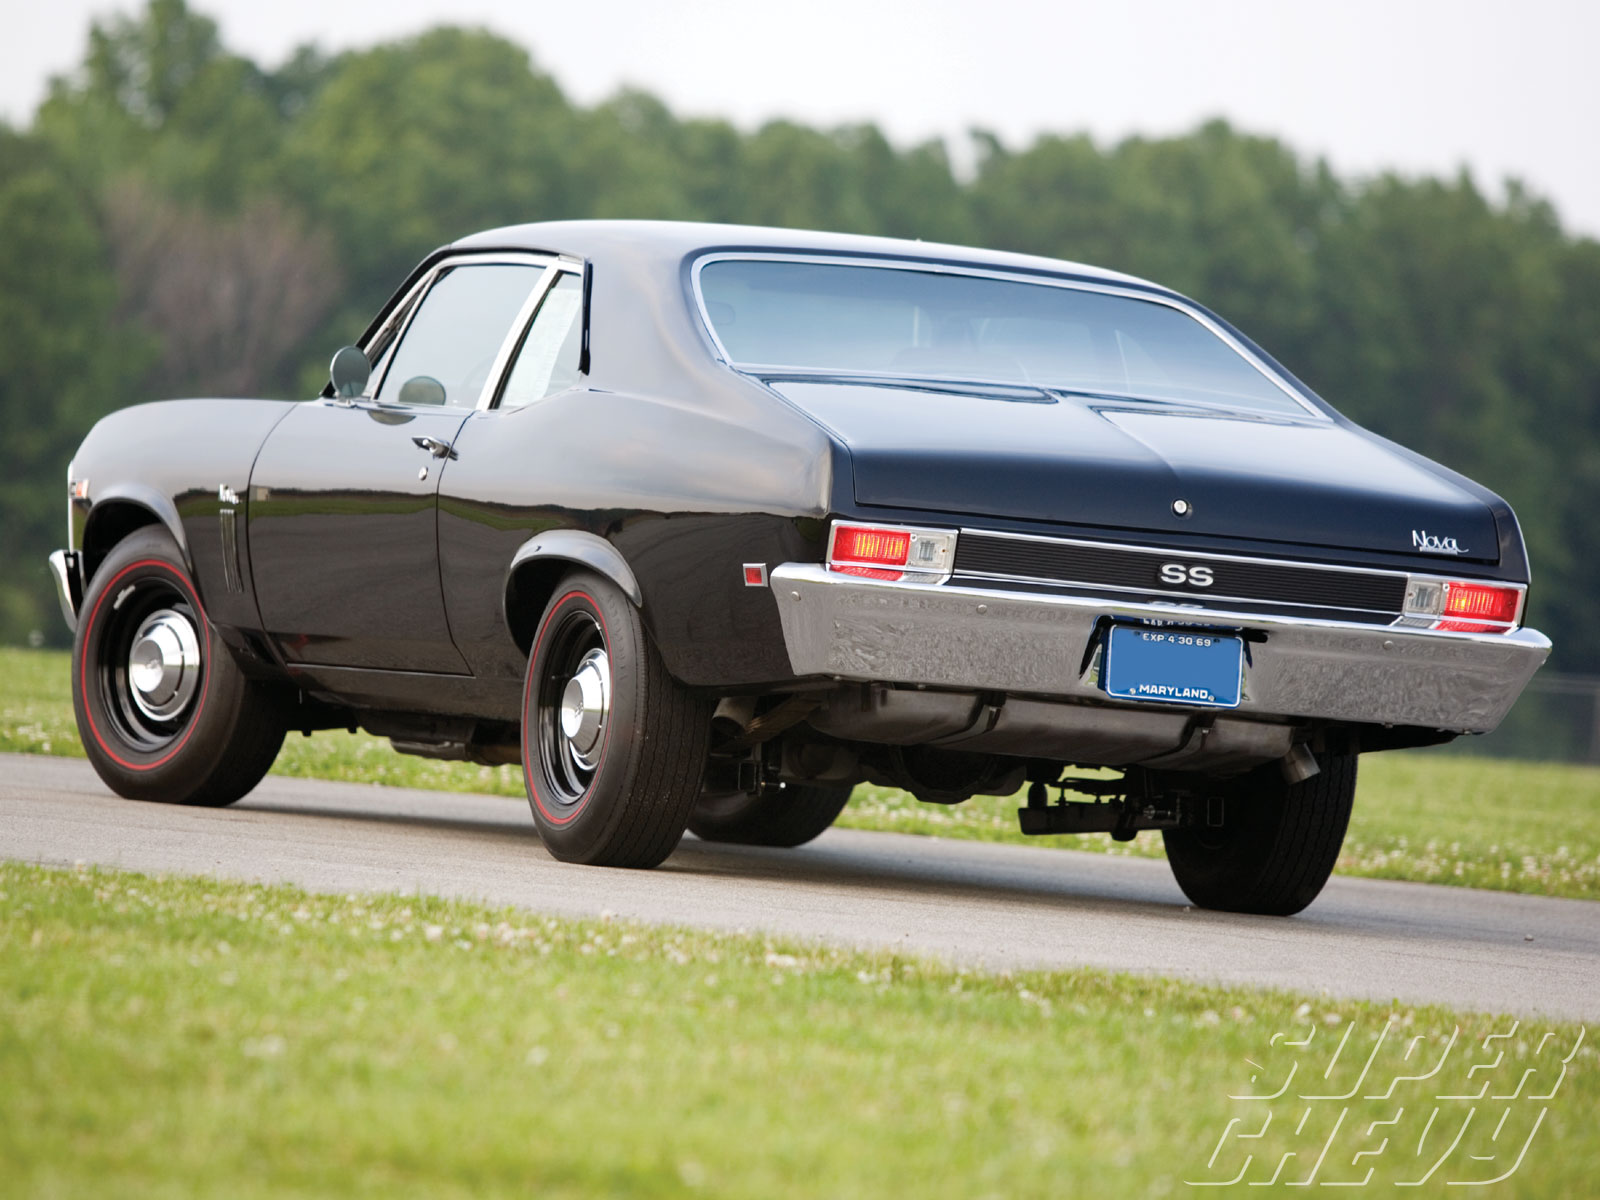 Coupe additionally 1968 CHEVROLET NOVA 2 DOOR 139052 in addition 1969 CHEVROLET CHEVELLE BALDWIN MOTION 160974 likewise Print page 1 1149018583 The Muscle Car besides 1969 Chevrolet Camaro Protouring Ls3 C 68. on chevy nova muscle car